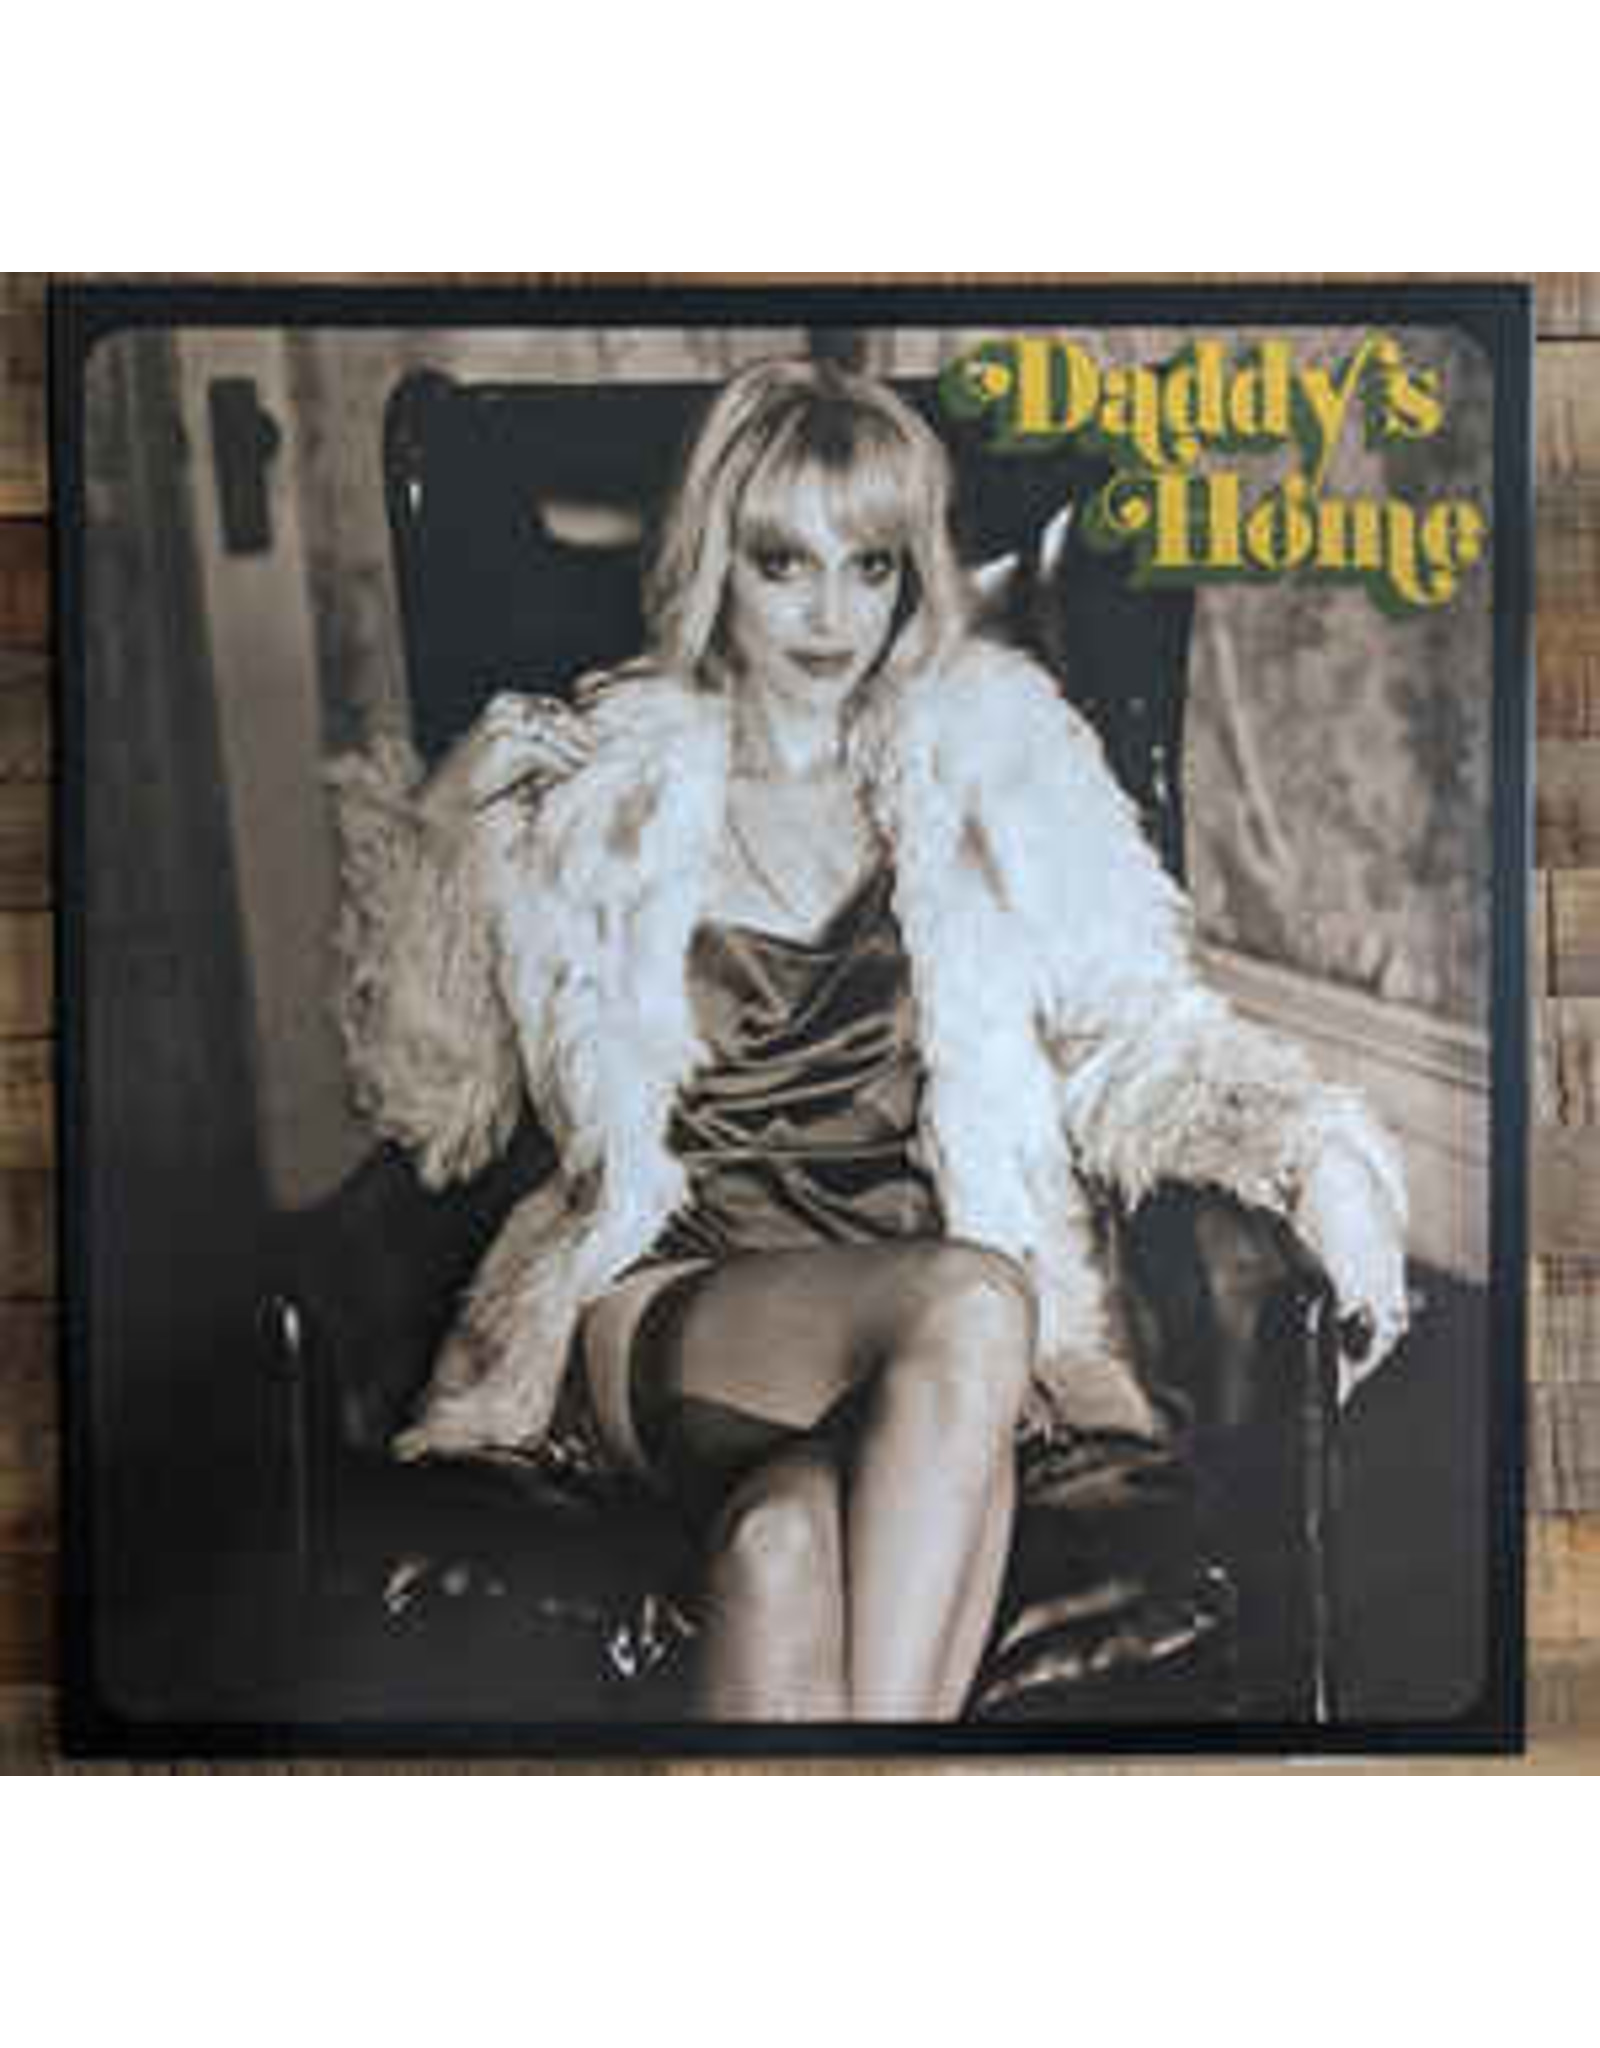 St. Vincent / Daddy's Home (Gatefold, Poster)